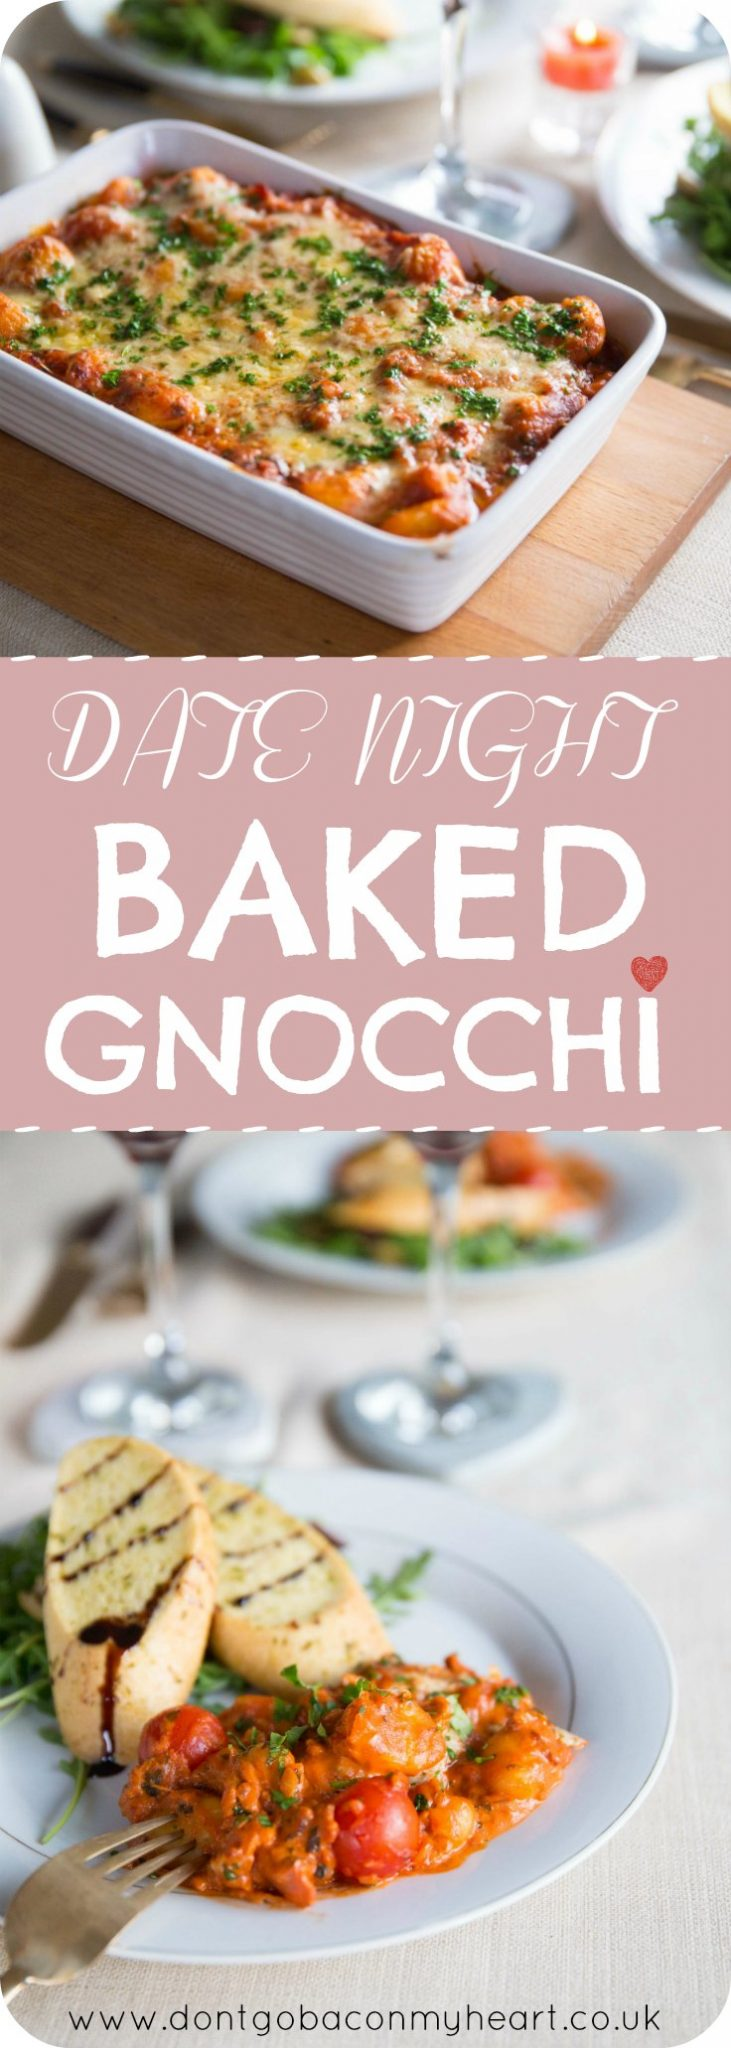 Date Night Baked Gnocchi with Bacon